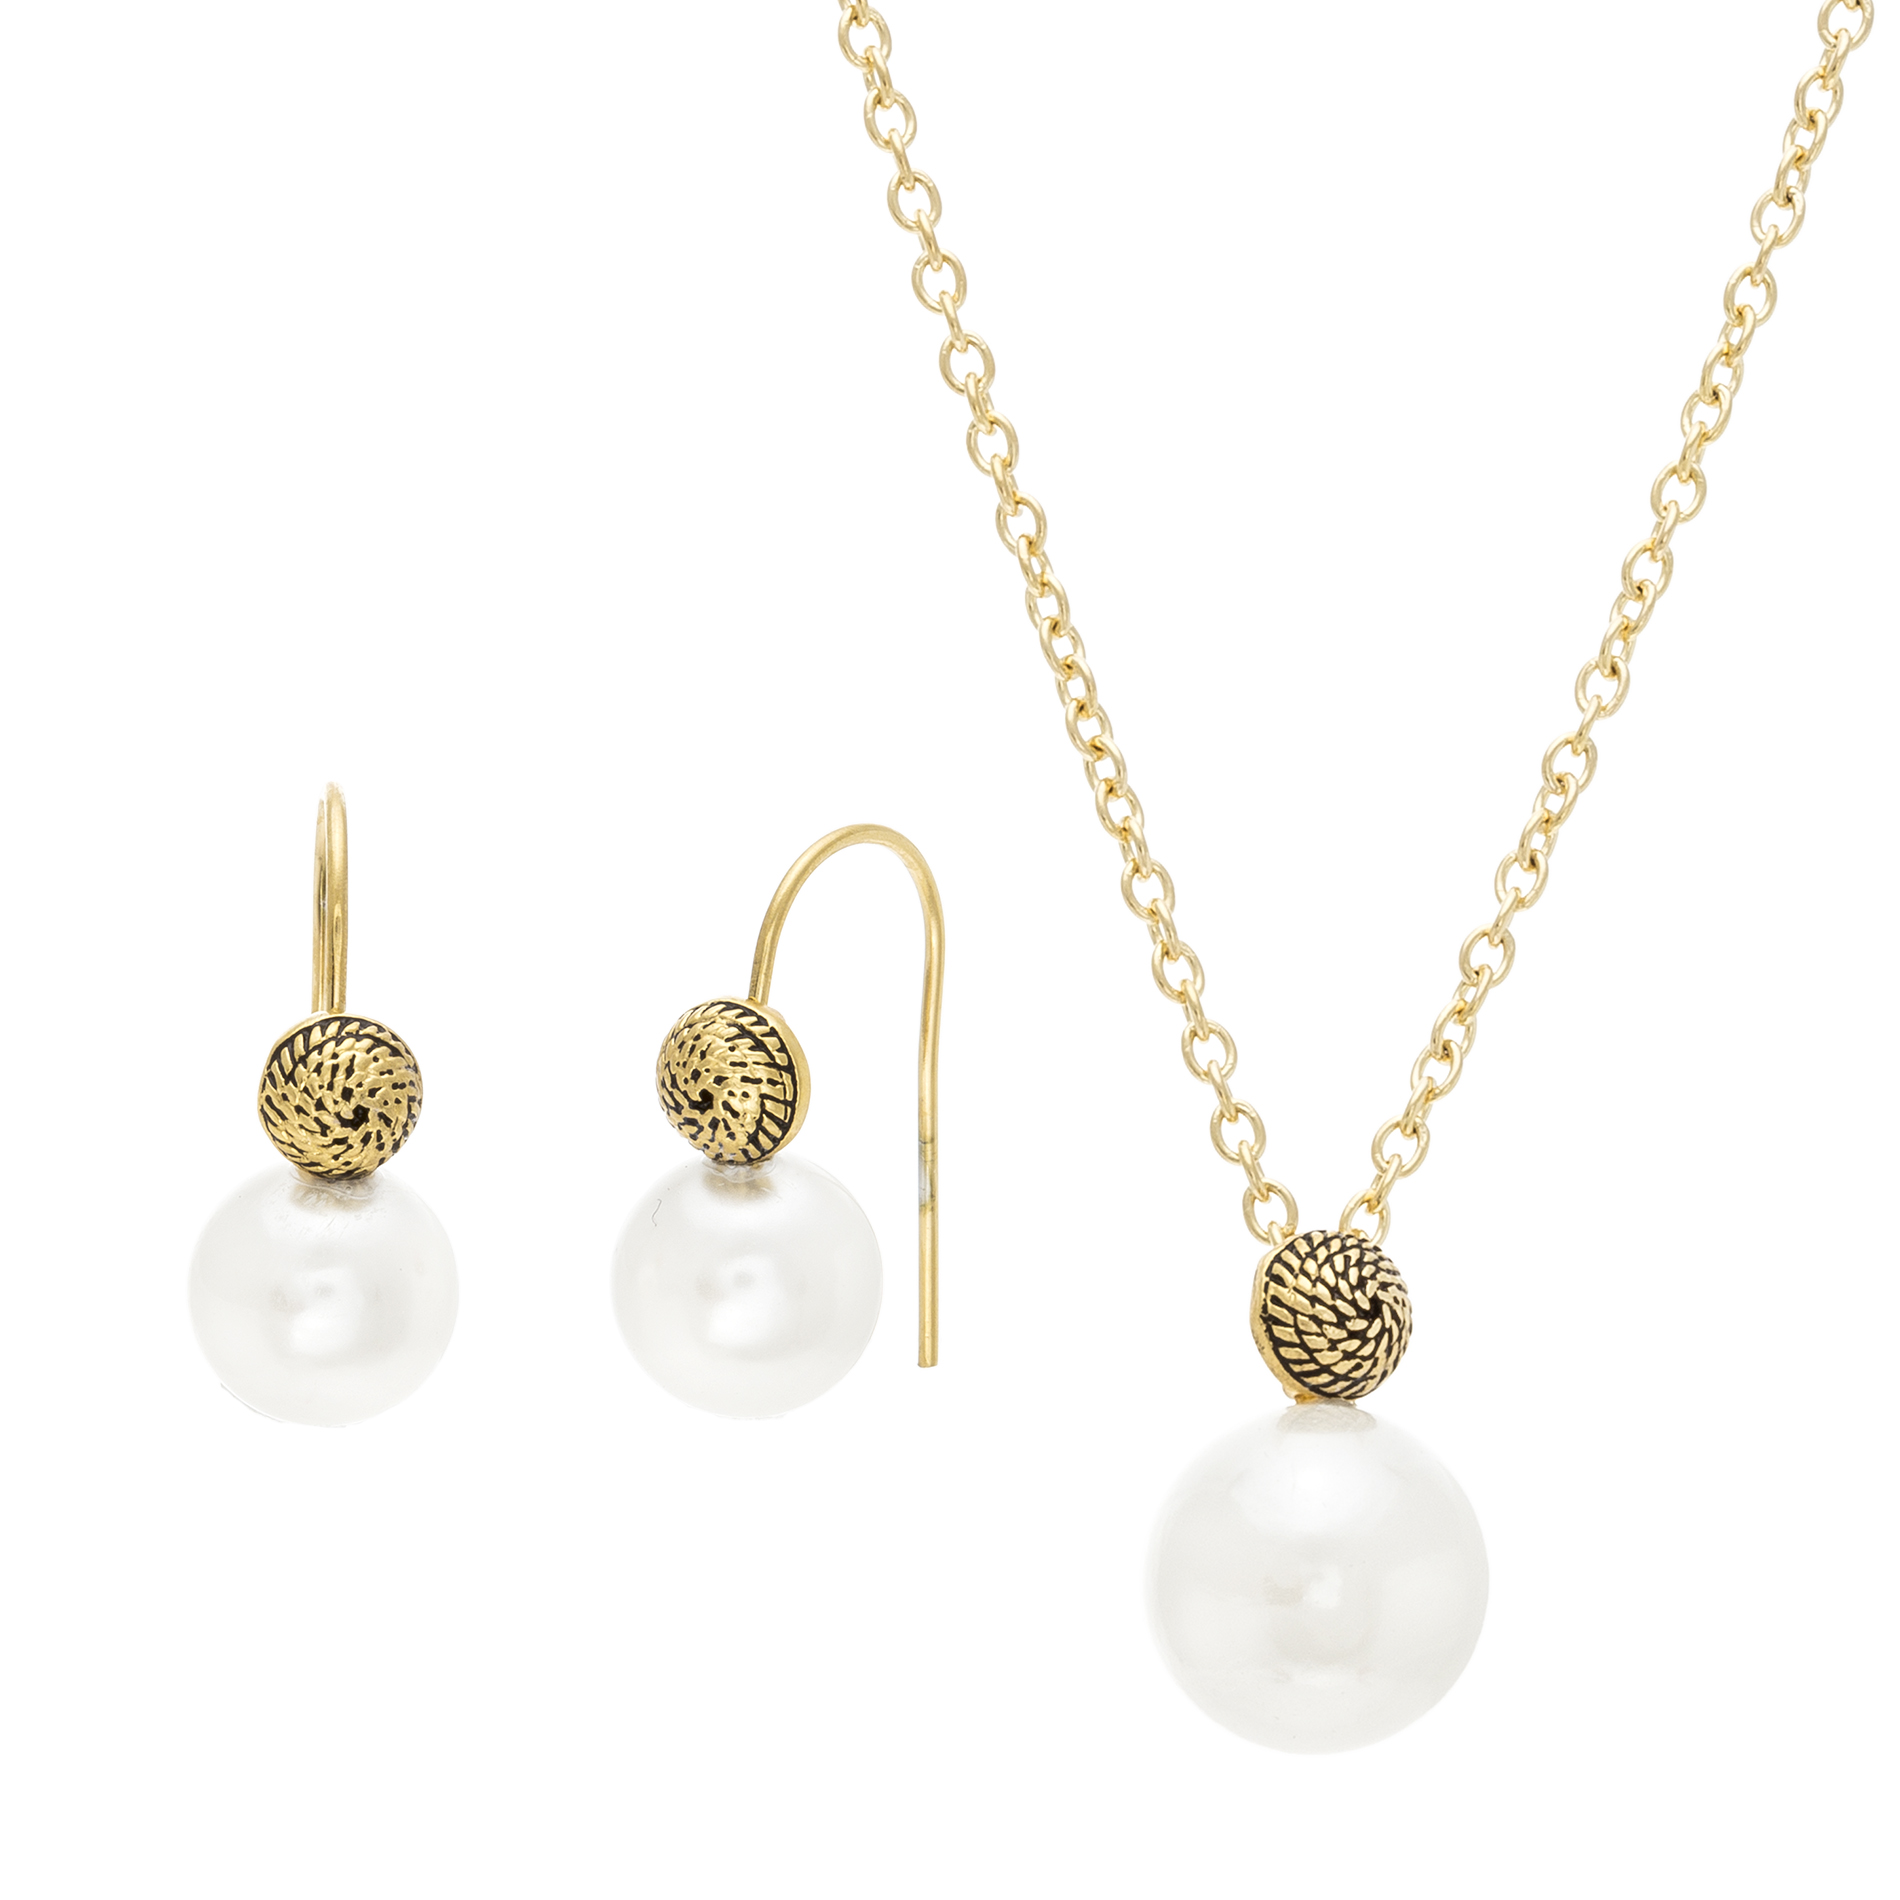 Gold-Tone Stainless Steel Freshwater Pearl Cable Chain and Hook Necklace and Earring Set